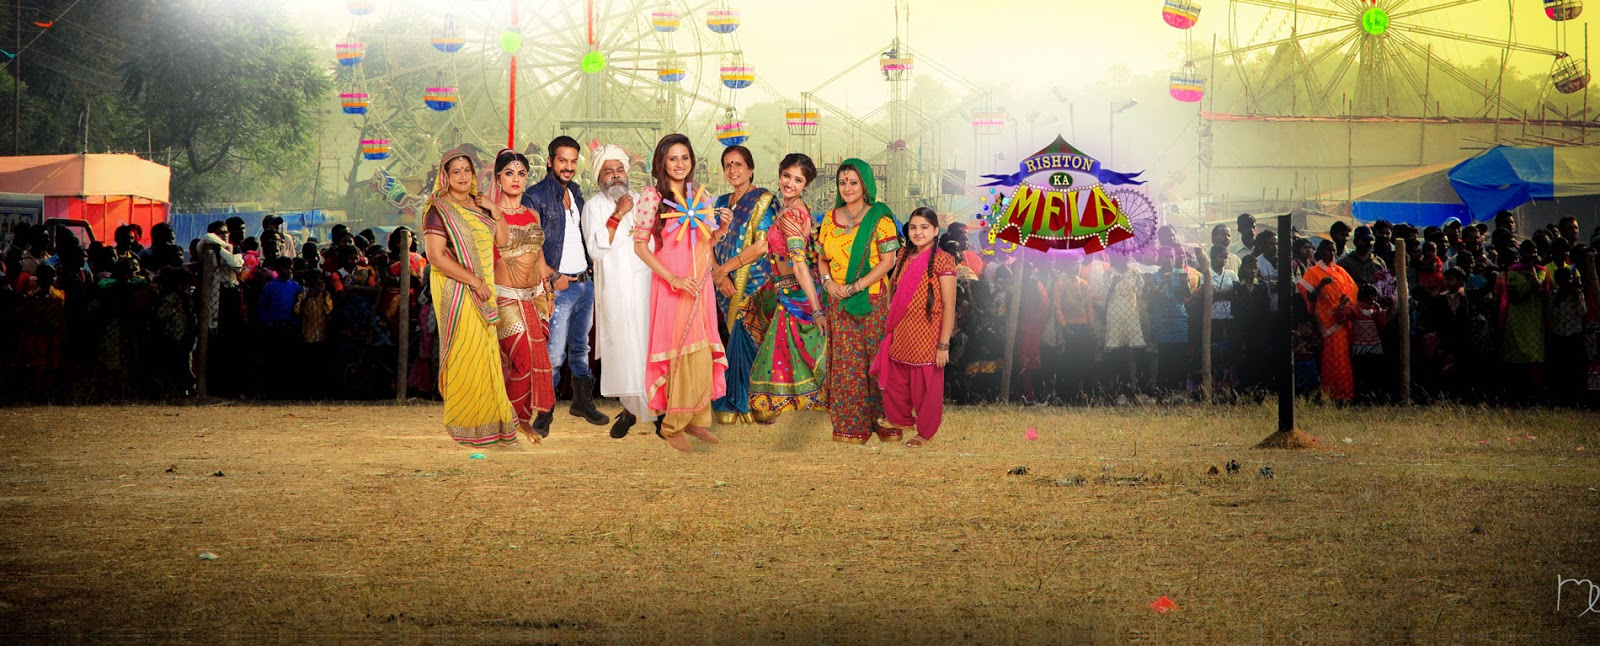 Rishton Ka Mela Zee tv serial wiki, Full Star-Cast and crew, Promos, story, Timings, TRP Rating, actress Character Name, Photo, wallpaper